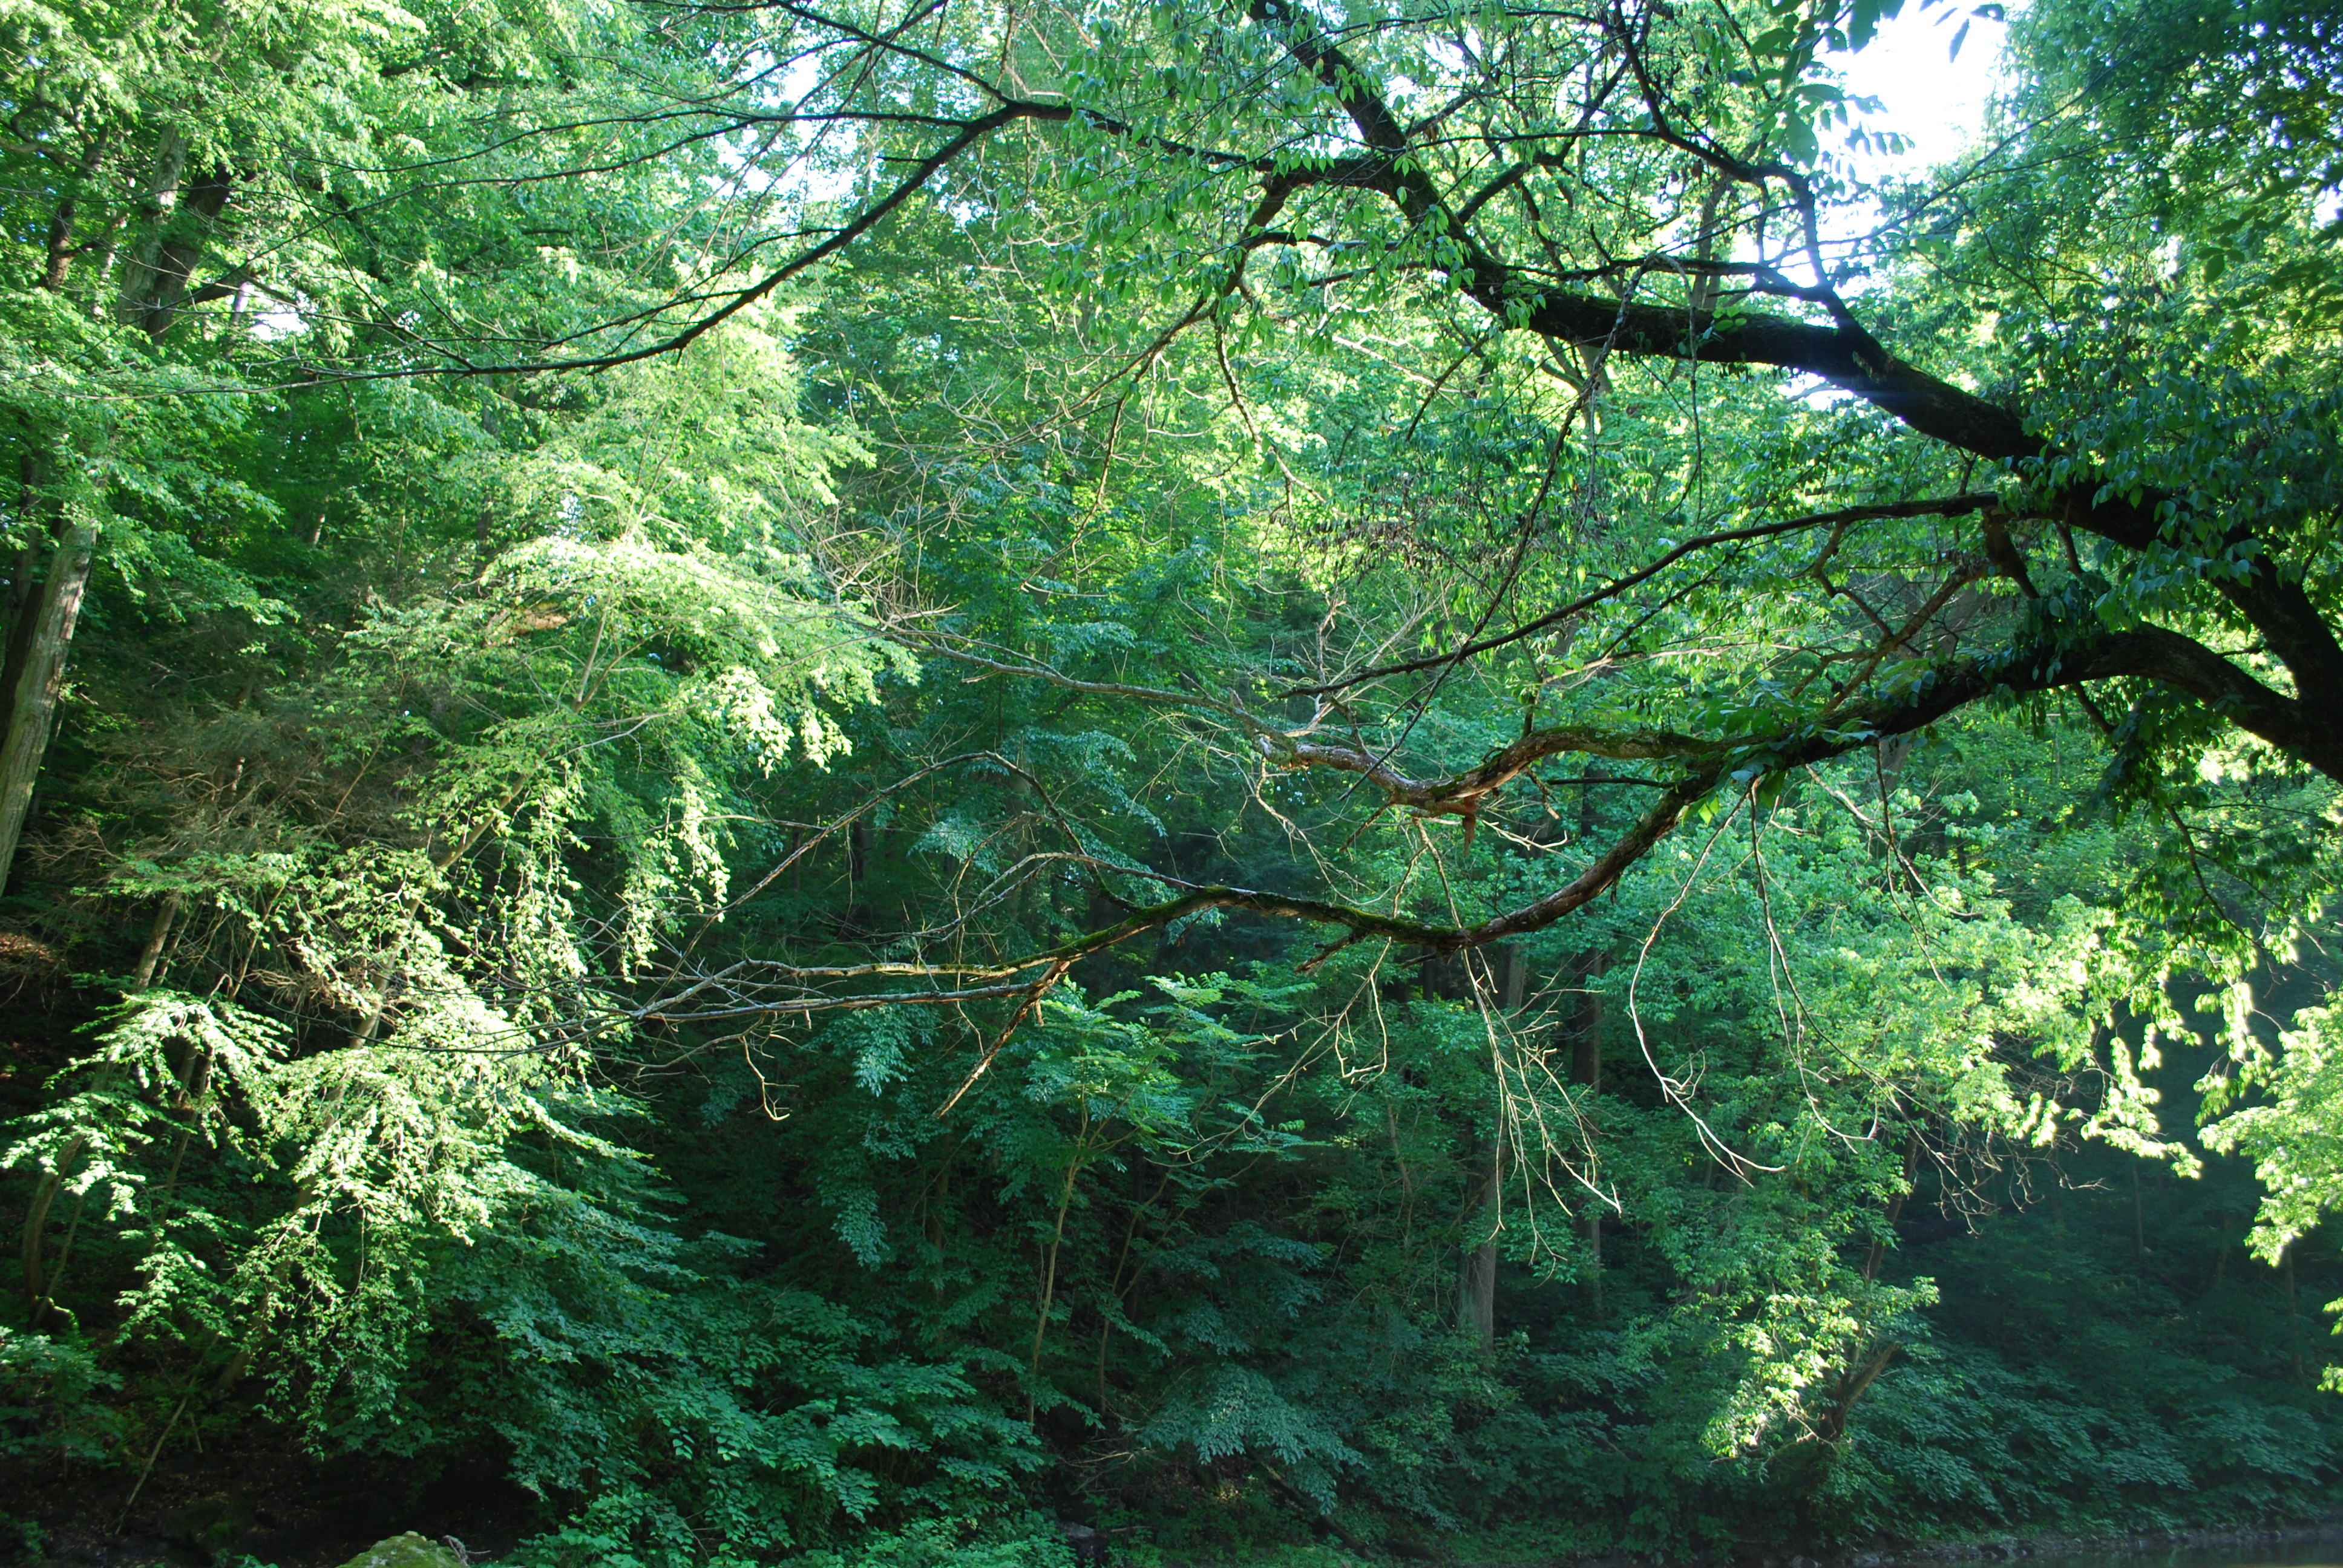 The forest of Wissahickon Creek